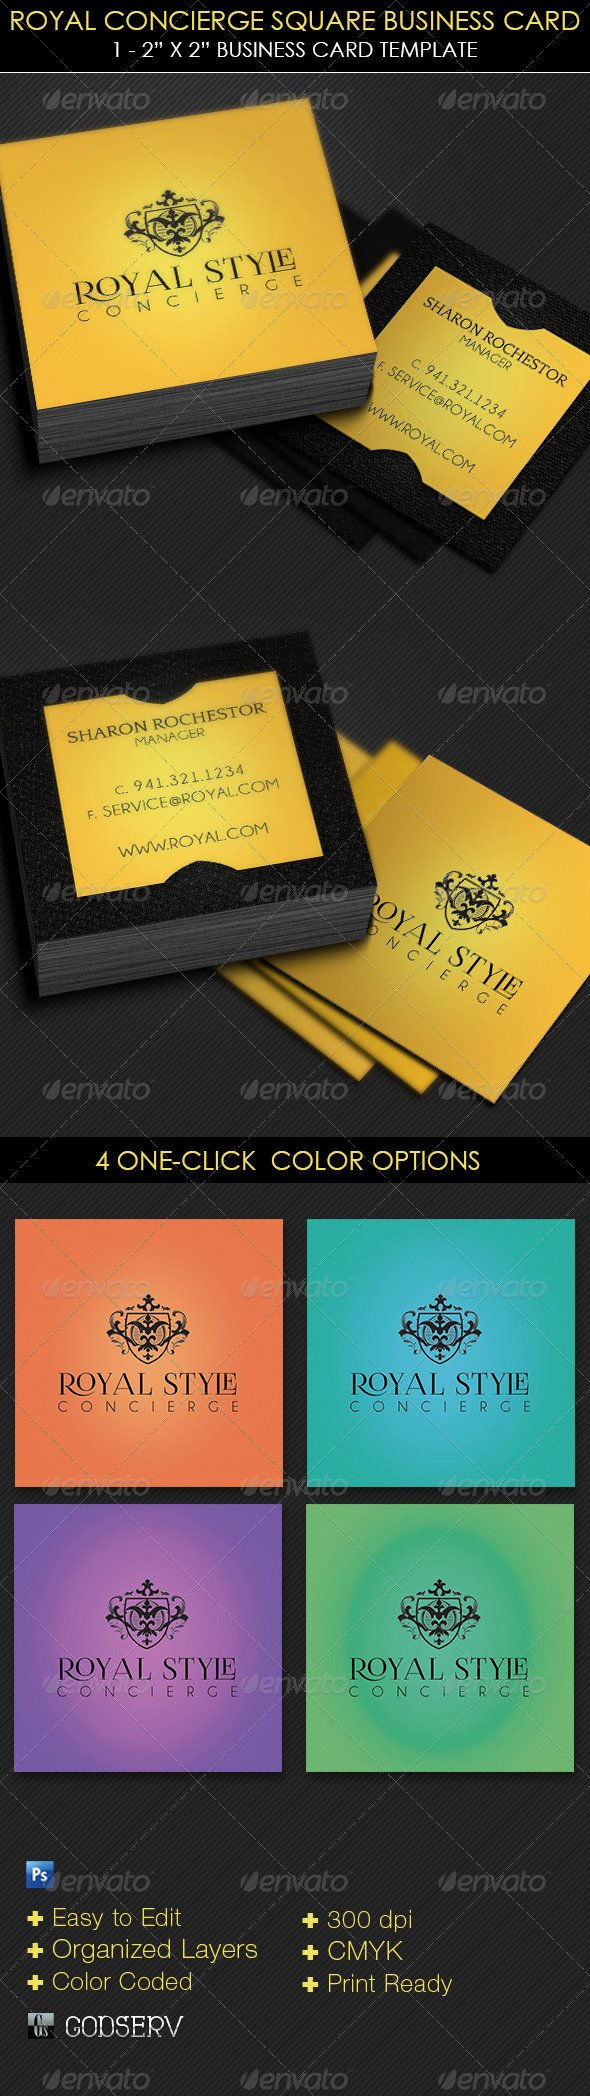 Square Business Card Template Free Luxury Royal Concierge Square Business Card Template by Godserv